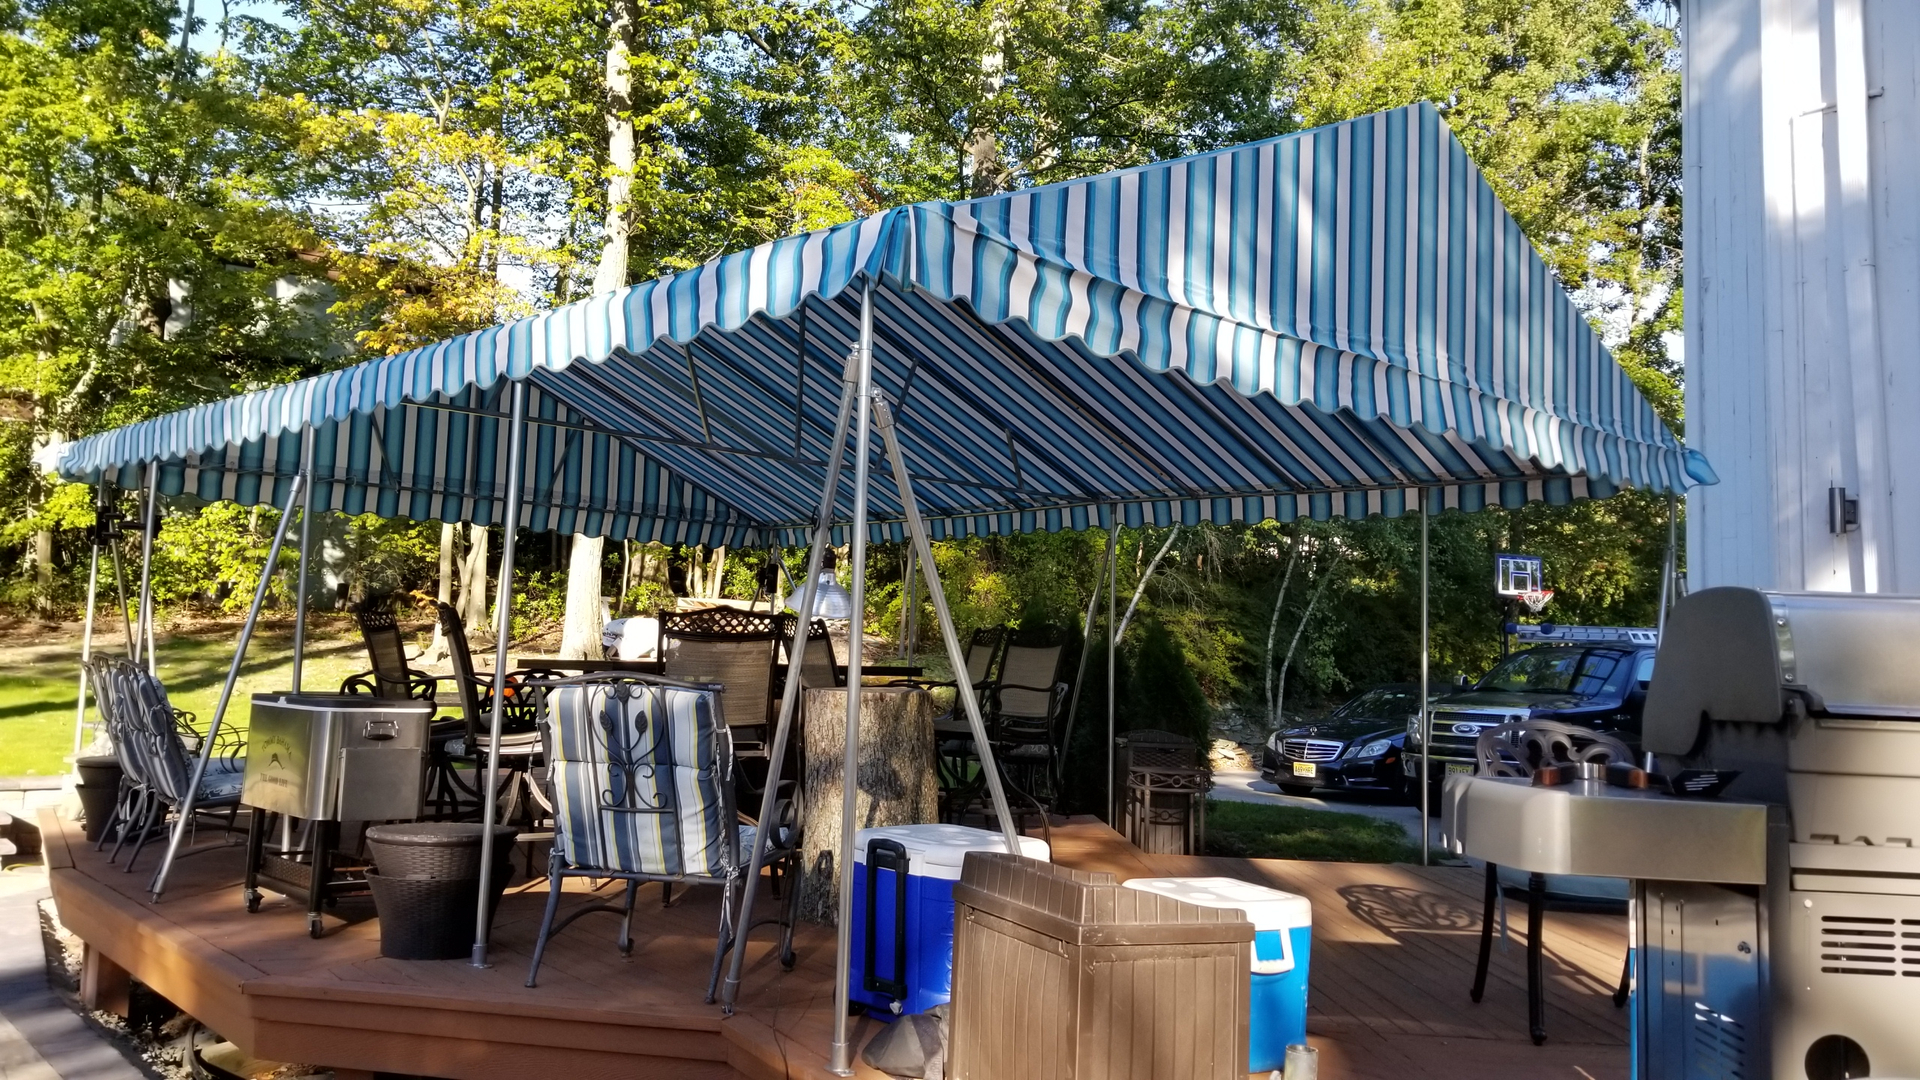 Awnings Nj Custom Awnings Canopies Nj Eco Awnings